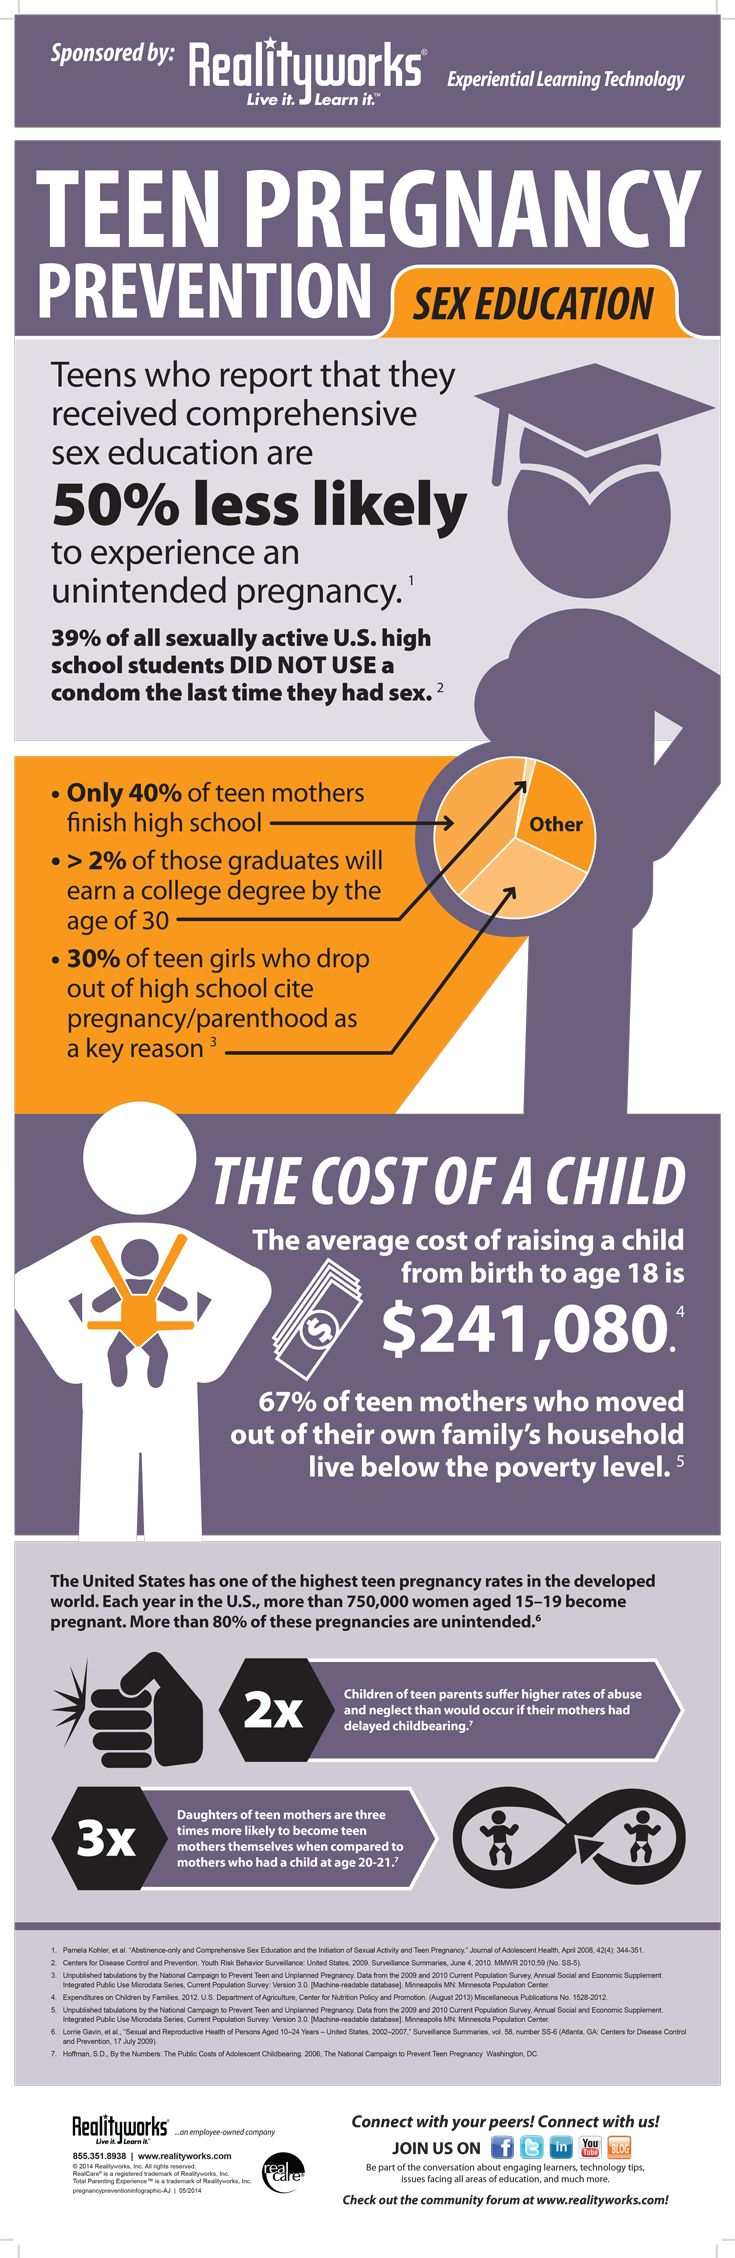 Pin On Teen Pregnancy Prevention-3969